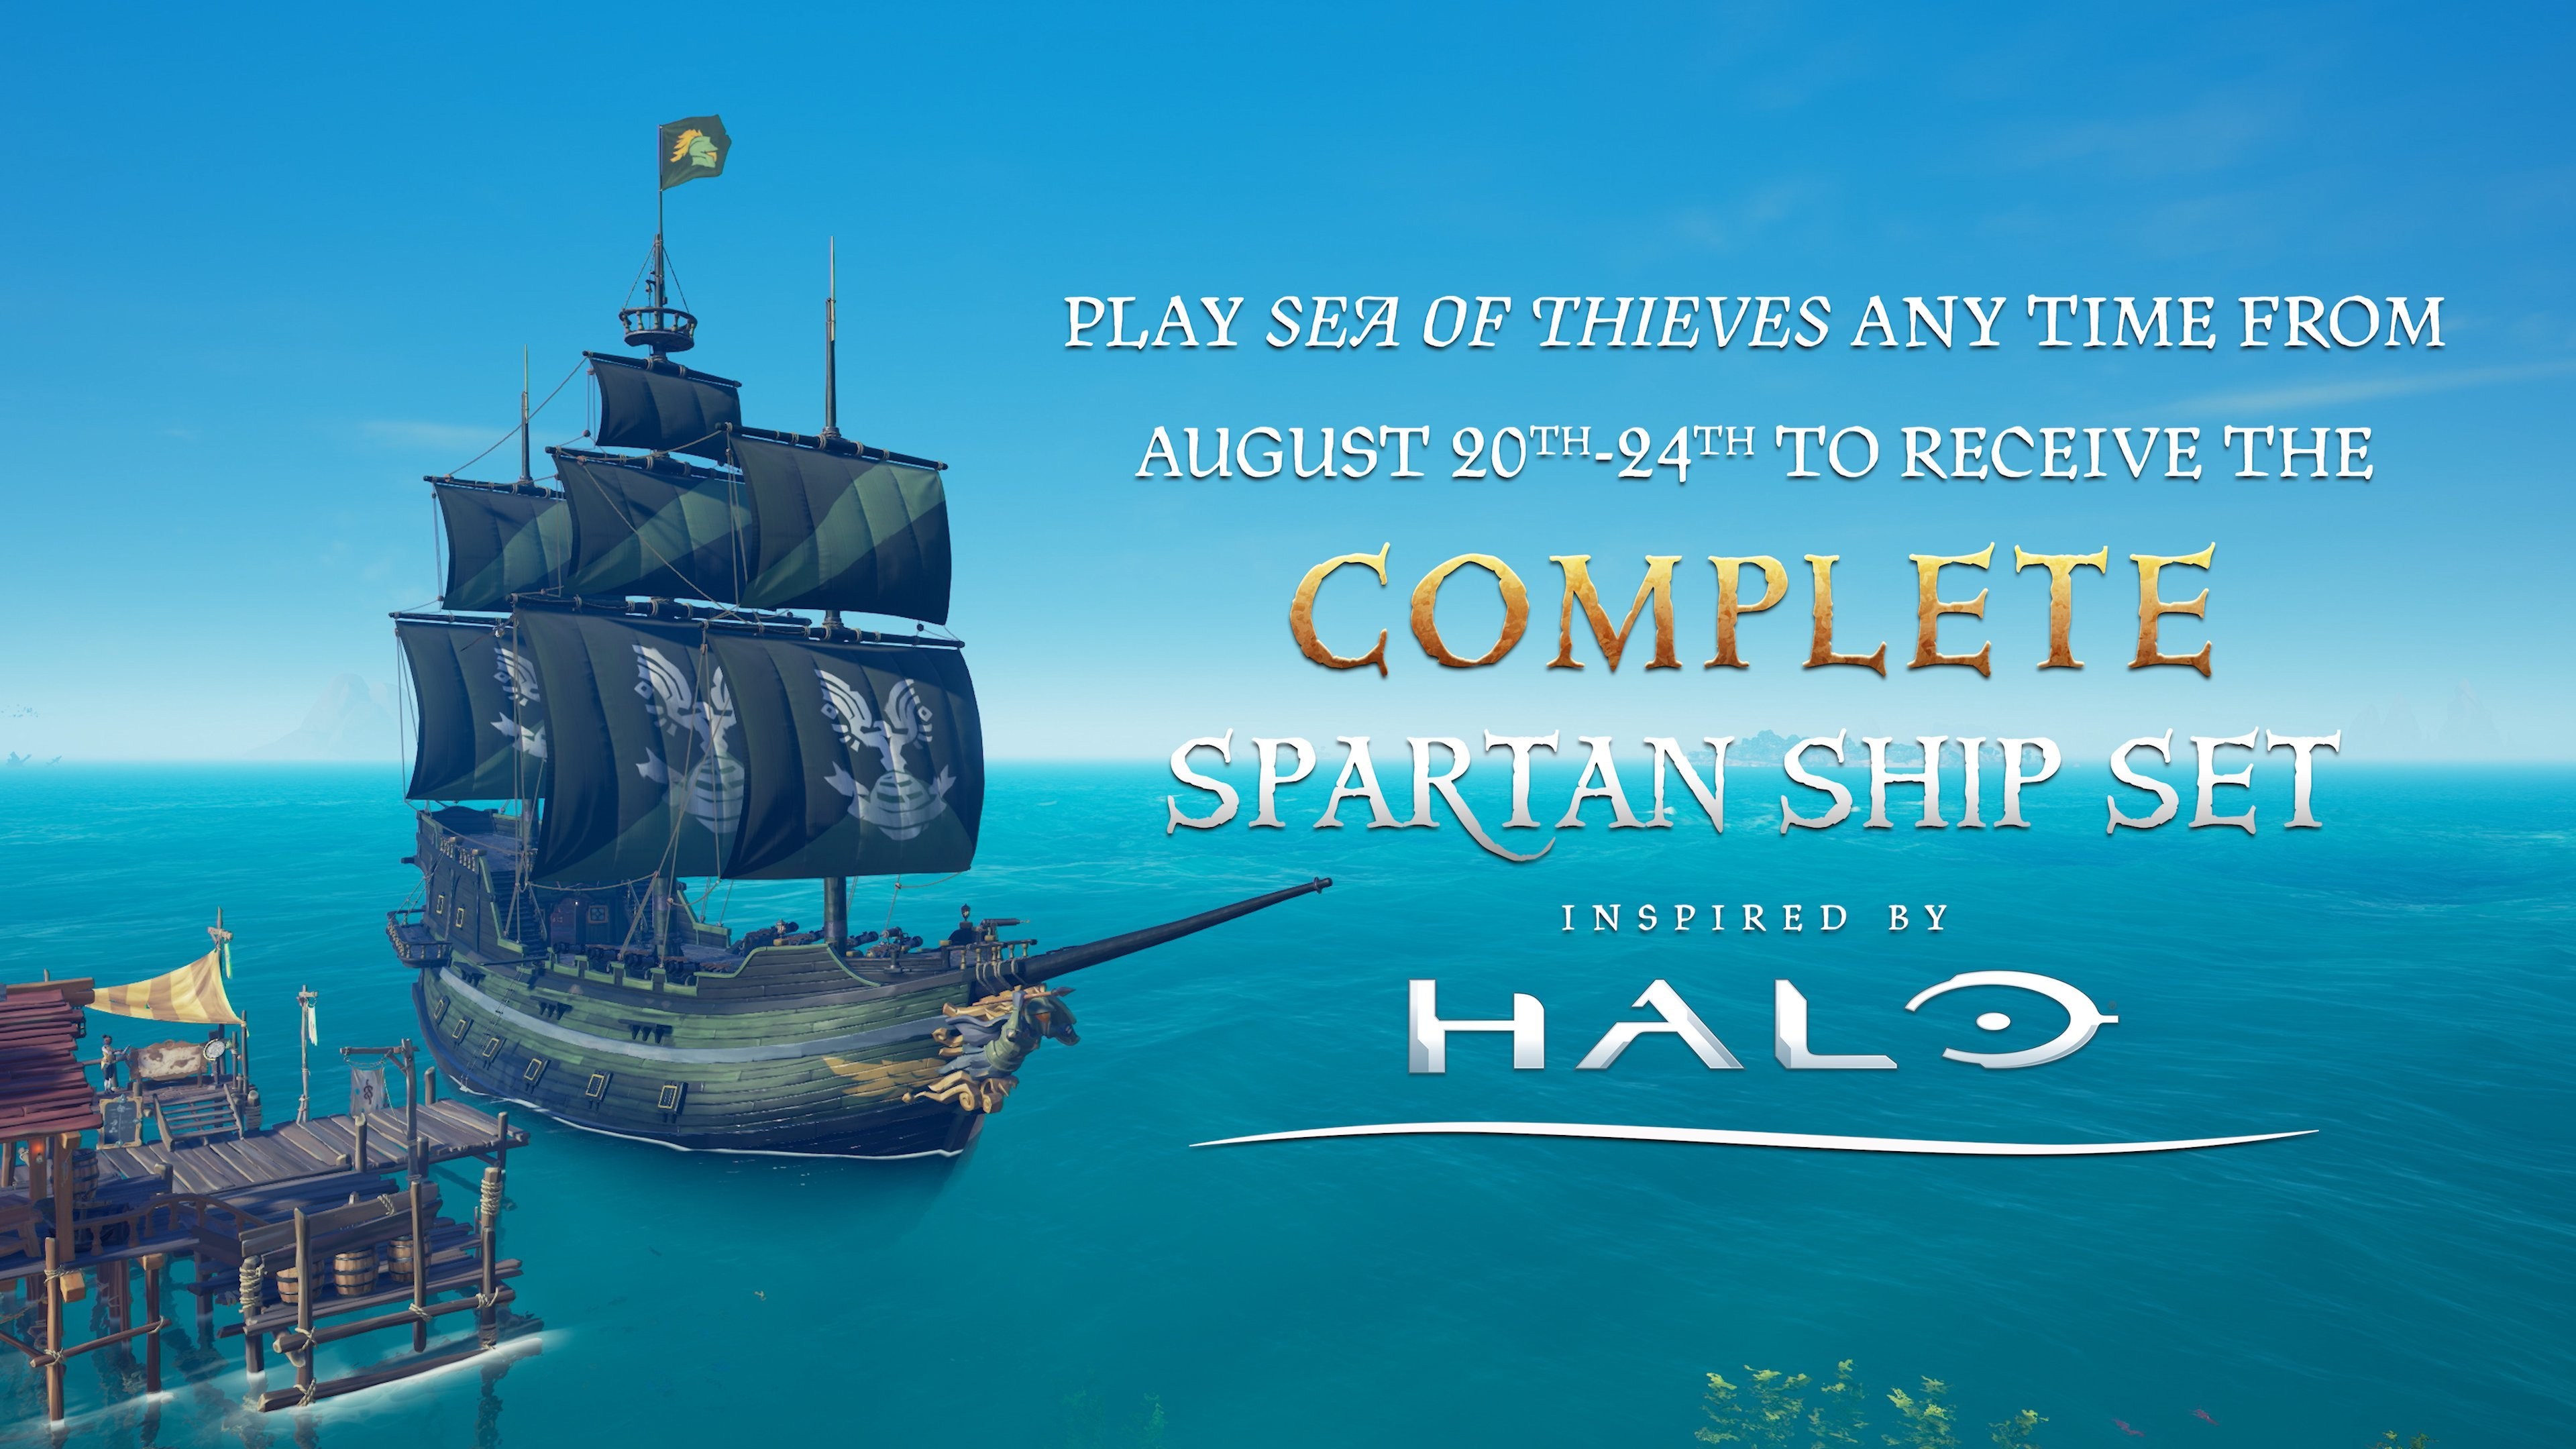 How to get the Spartan Ship Set in Sea of Thieves